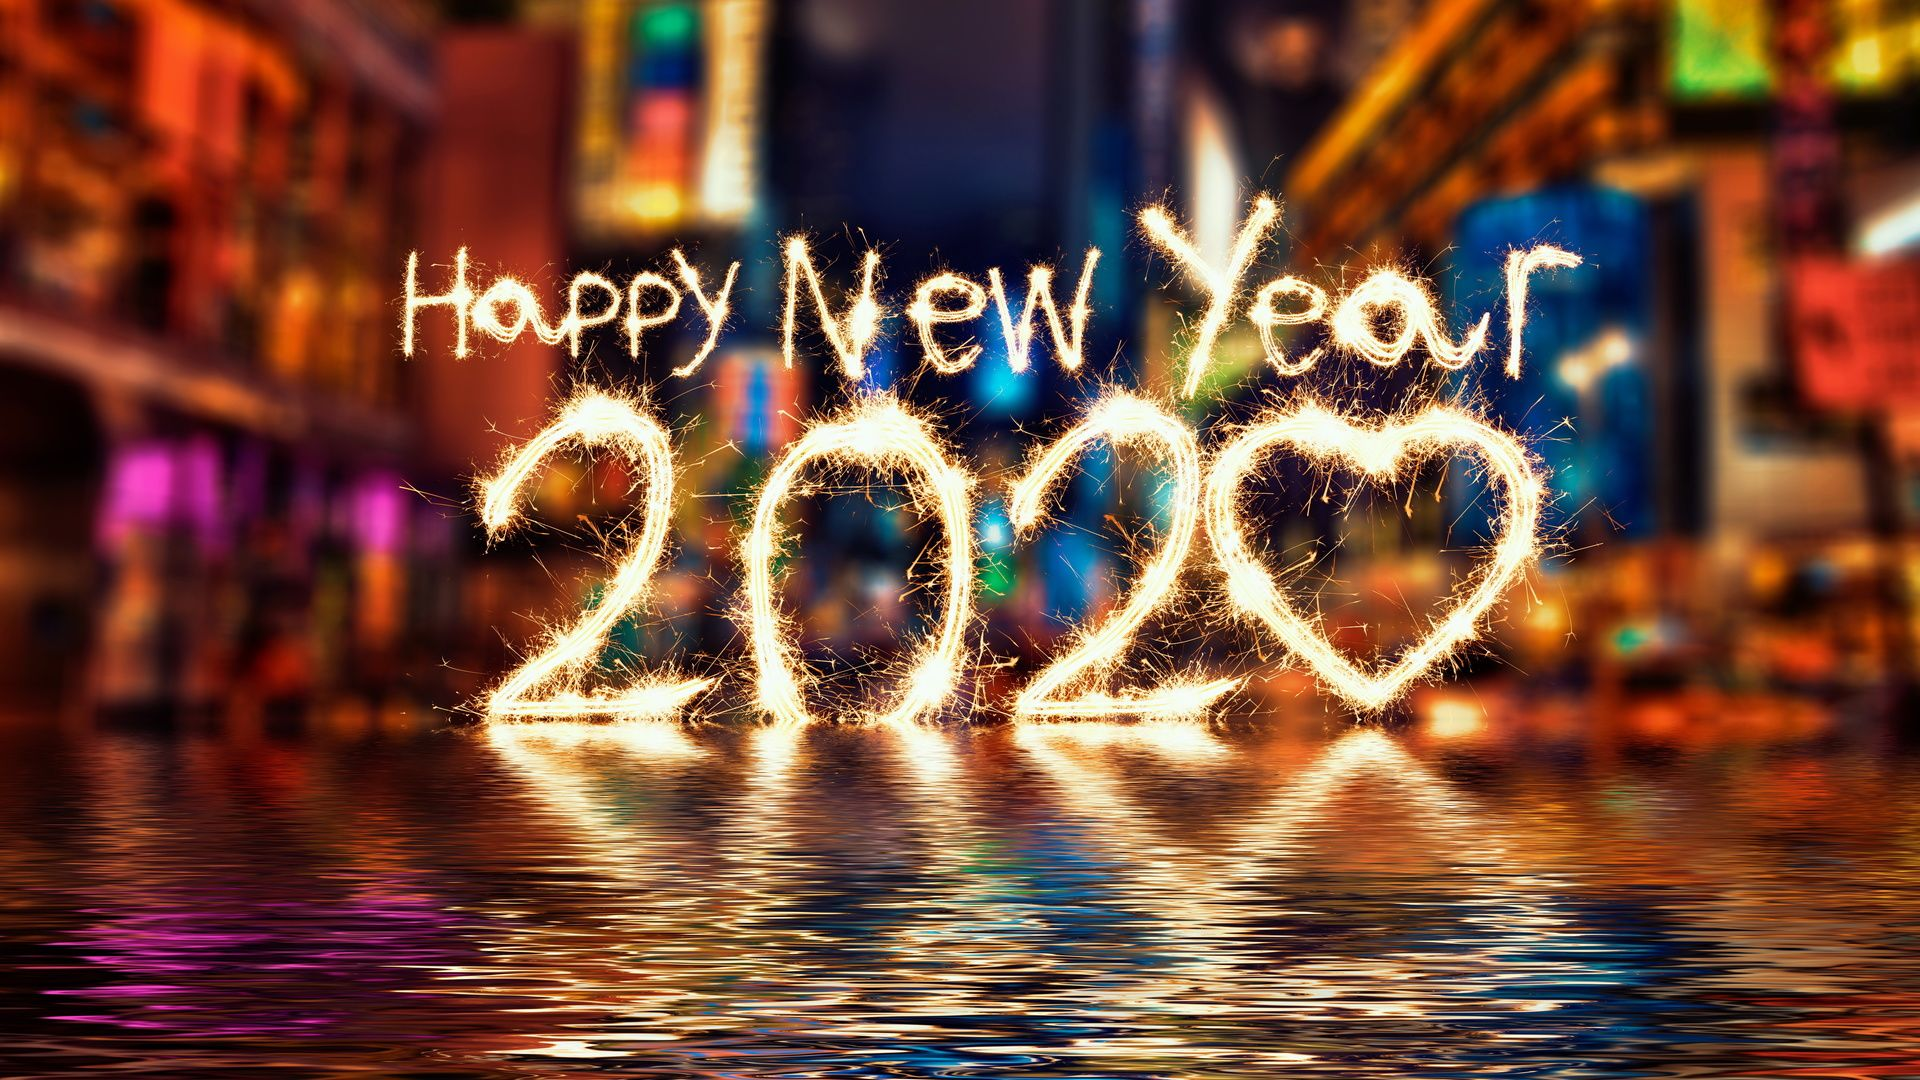 Happy New Year 2020 a wallpaper